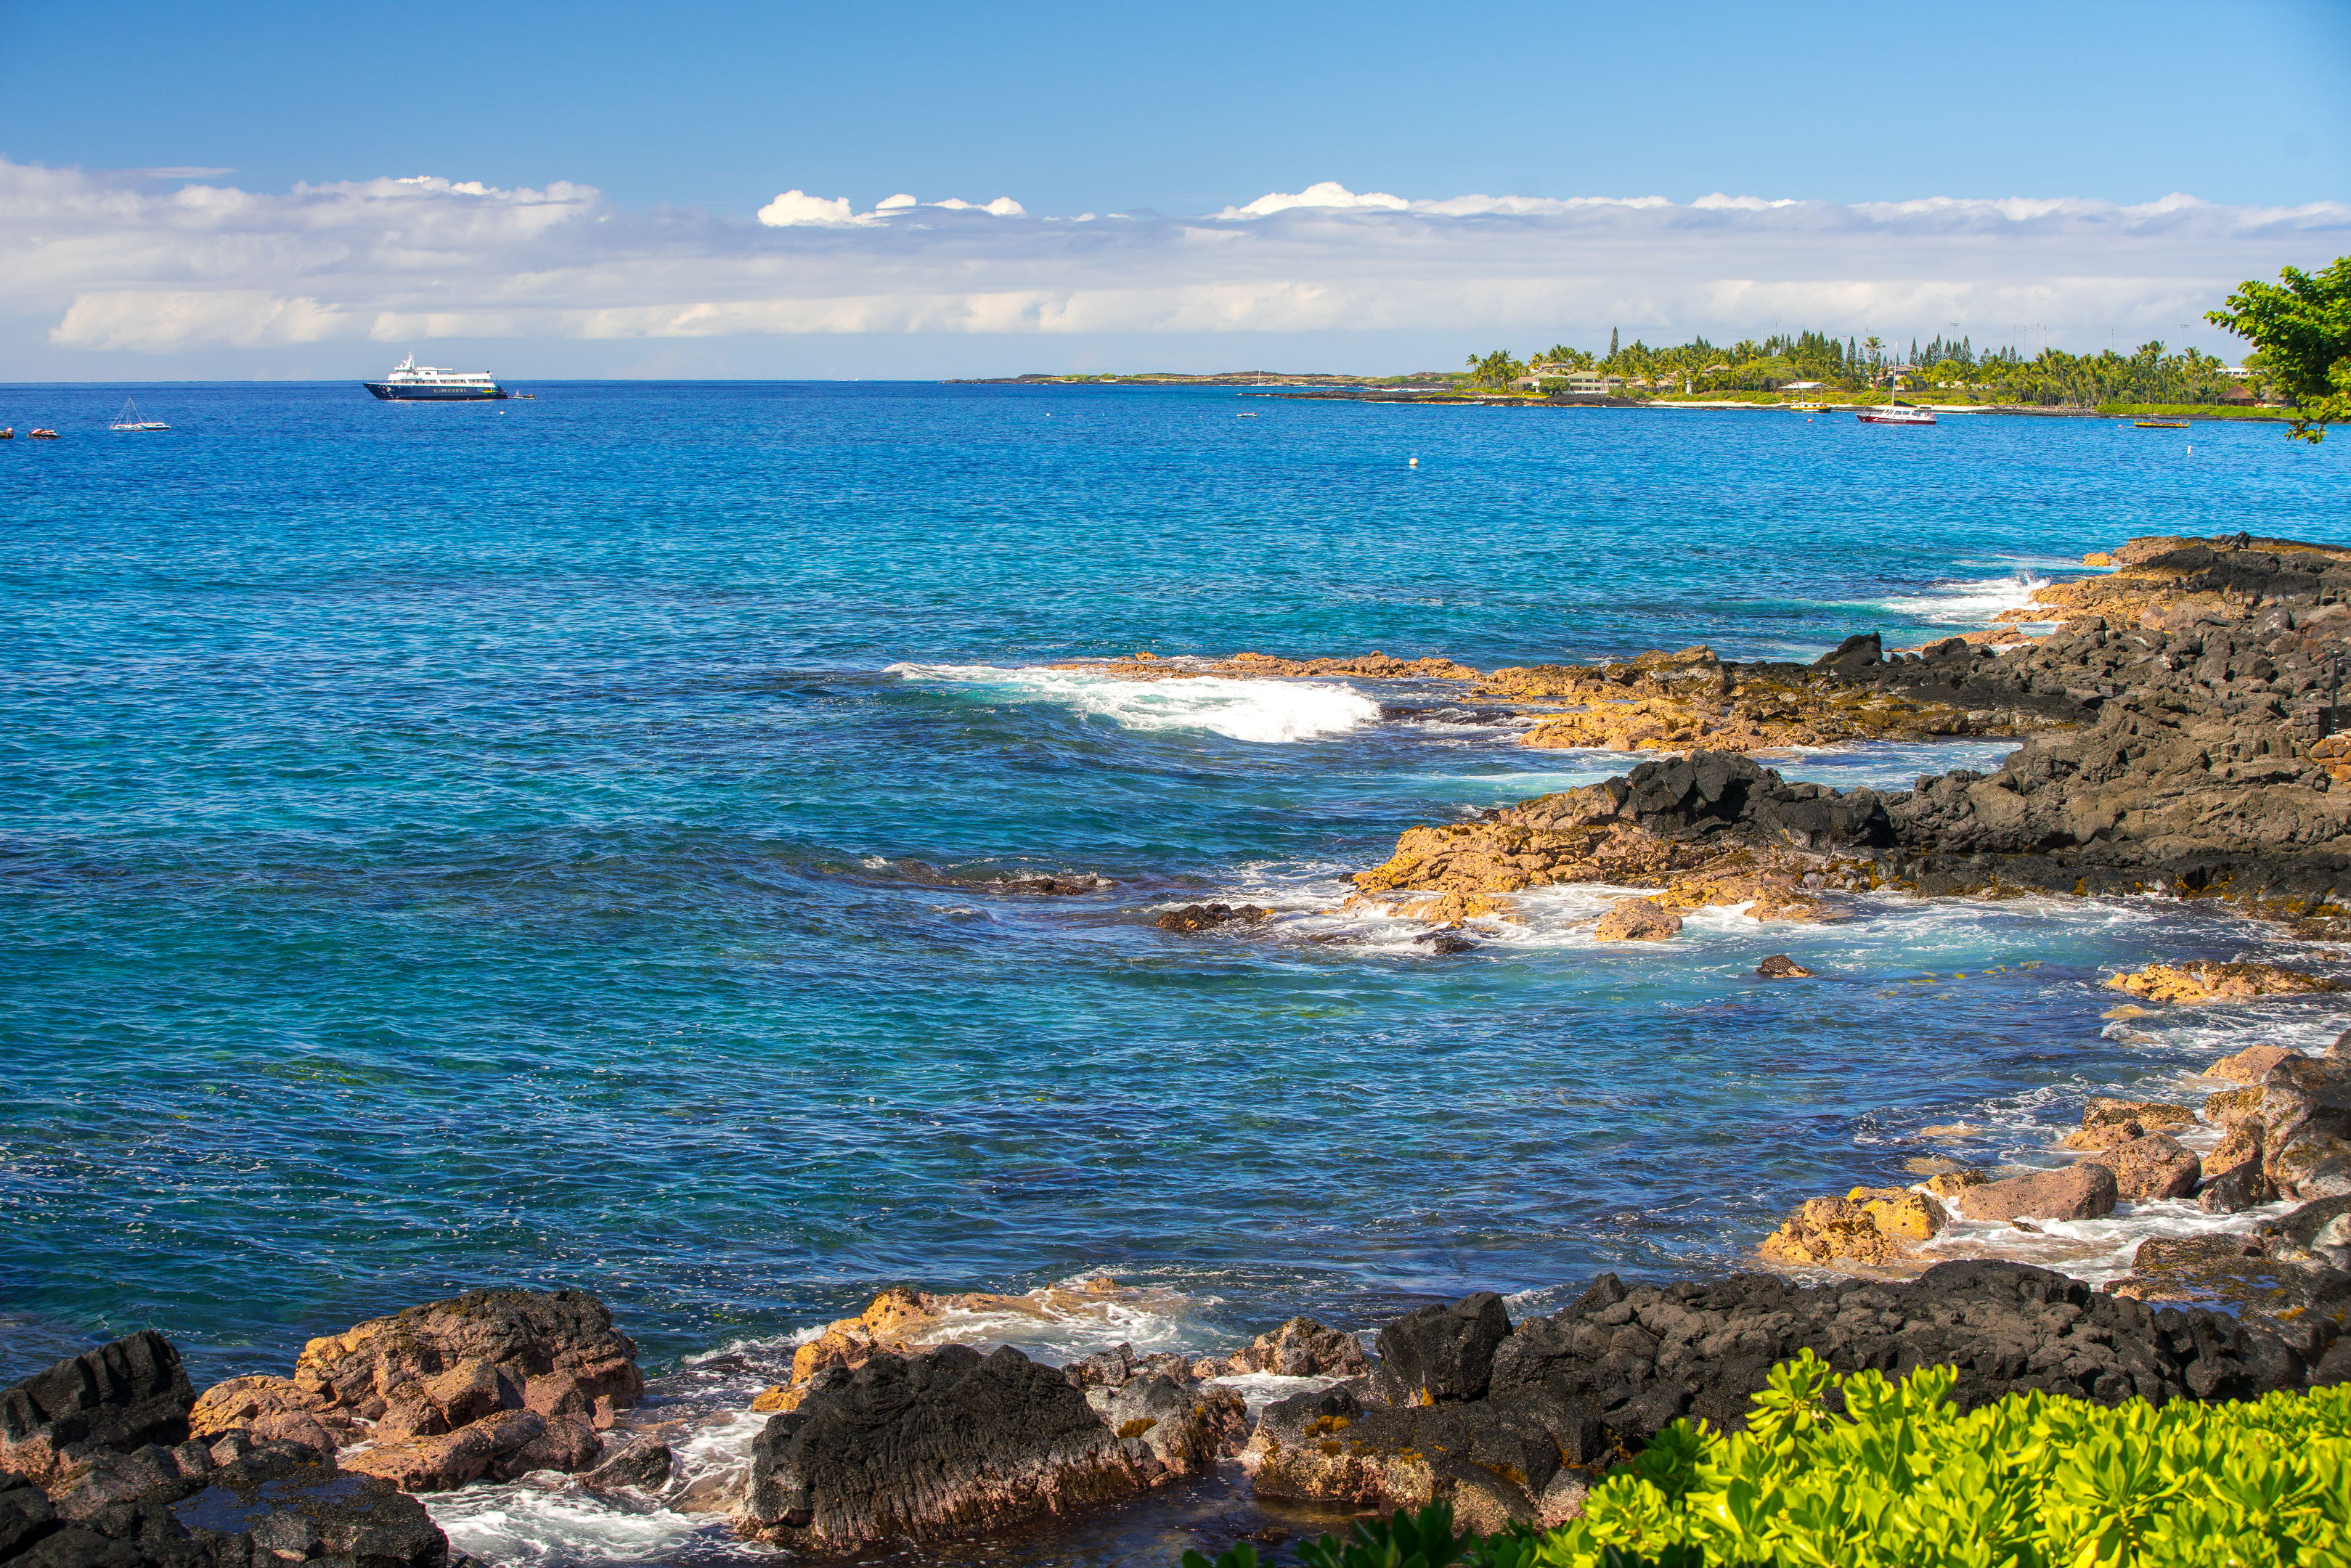 Views of the cost can be seen to the north of your lanai.